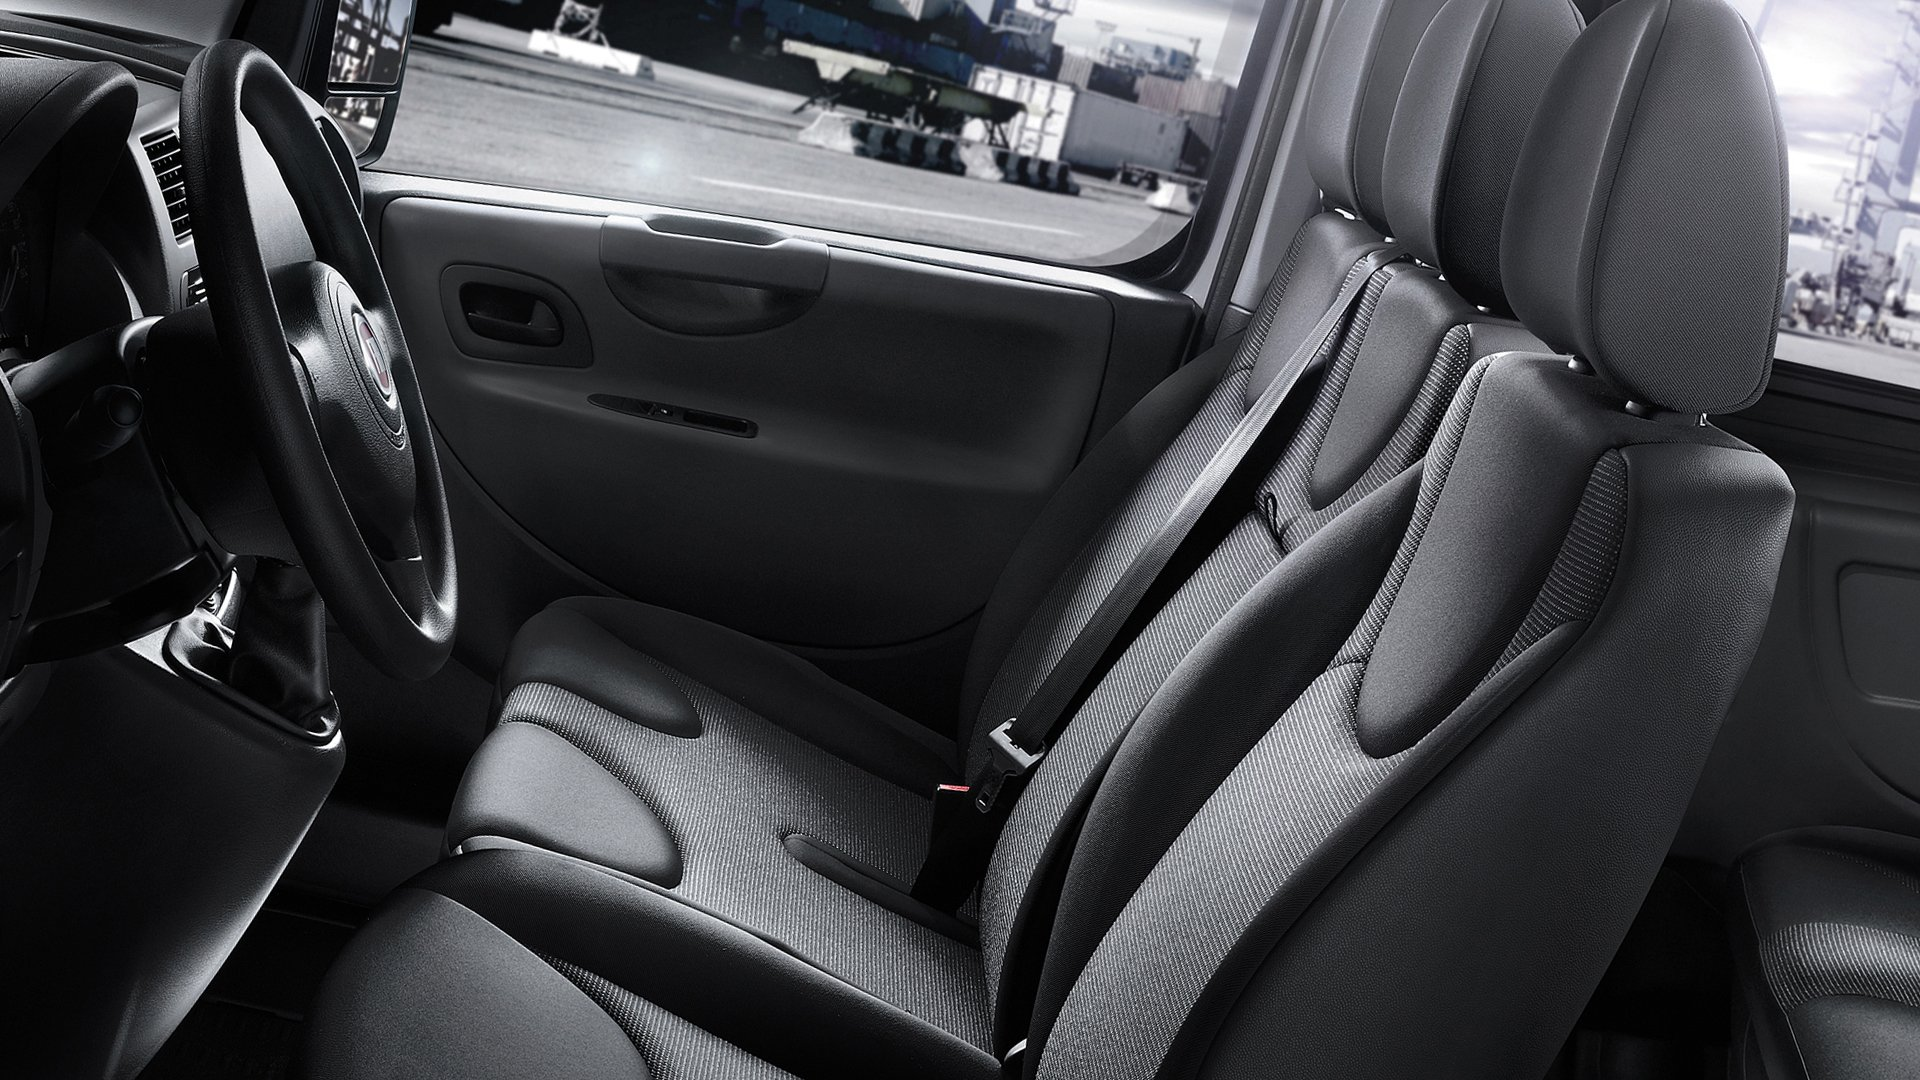 New 2019 FIAT Scudo Interior Design